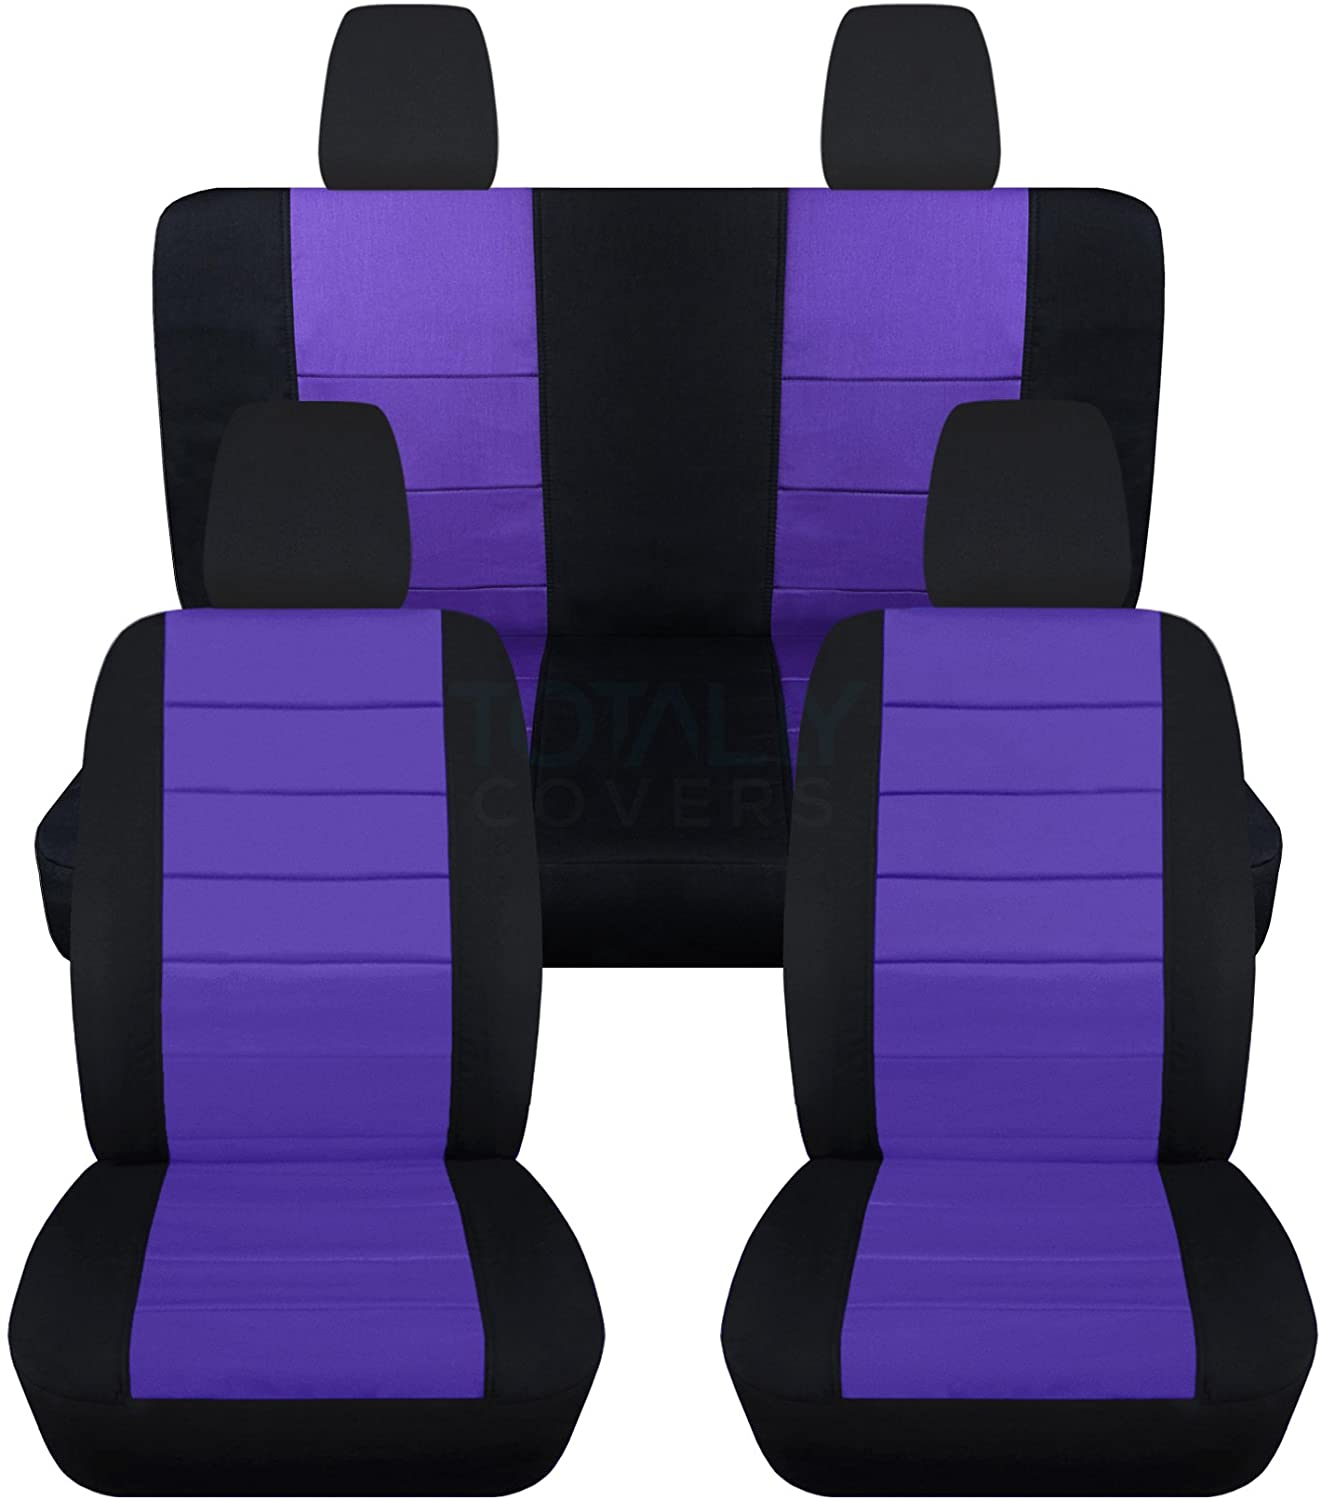 Totally Covers Compatible with 2011-2018 Jeep Wrangler JK Seat Covers: Black & Purple - Full Set: Front & Rear (23 Colors) 2-Door/4-Door Complete Back Solid/Split Bench